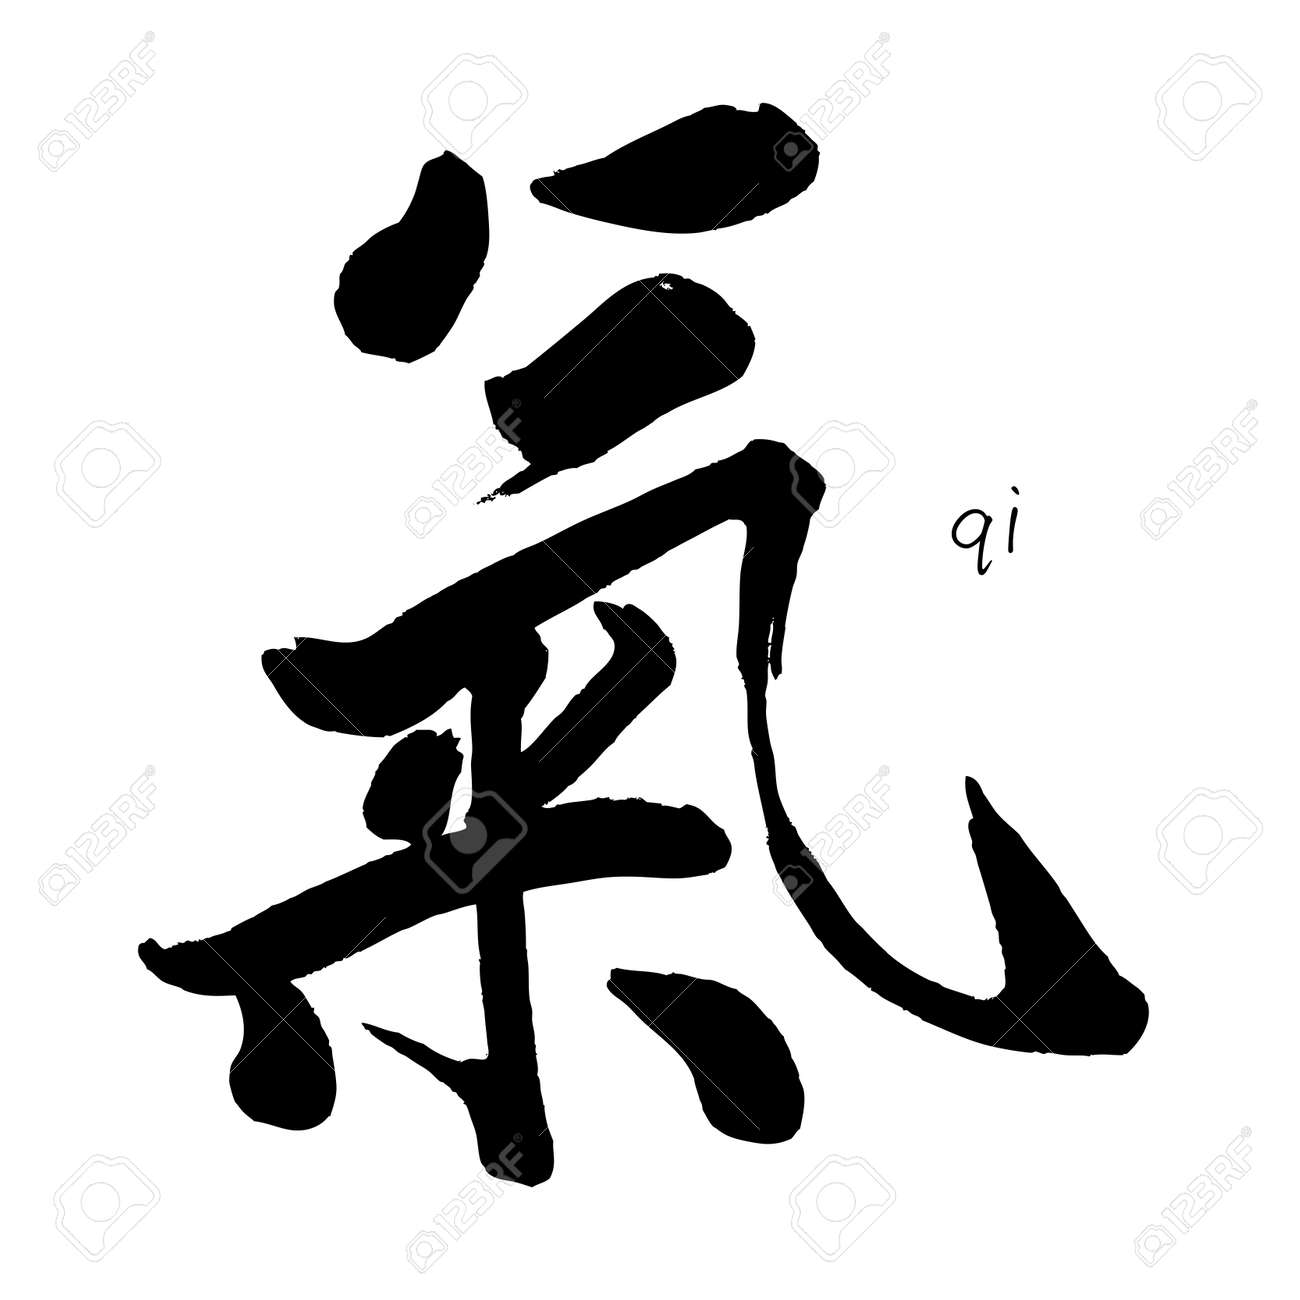 Chinese Calligraphy Qi Qigong Air A System Of Deep